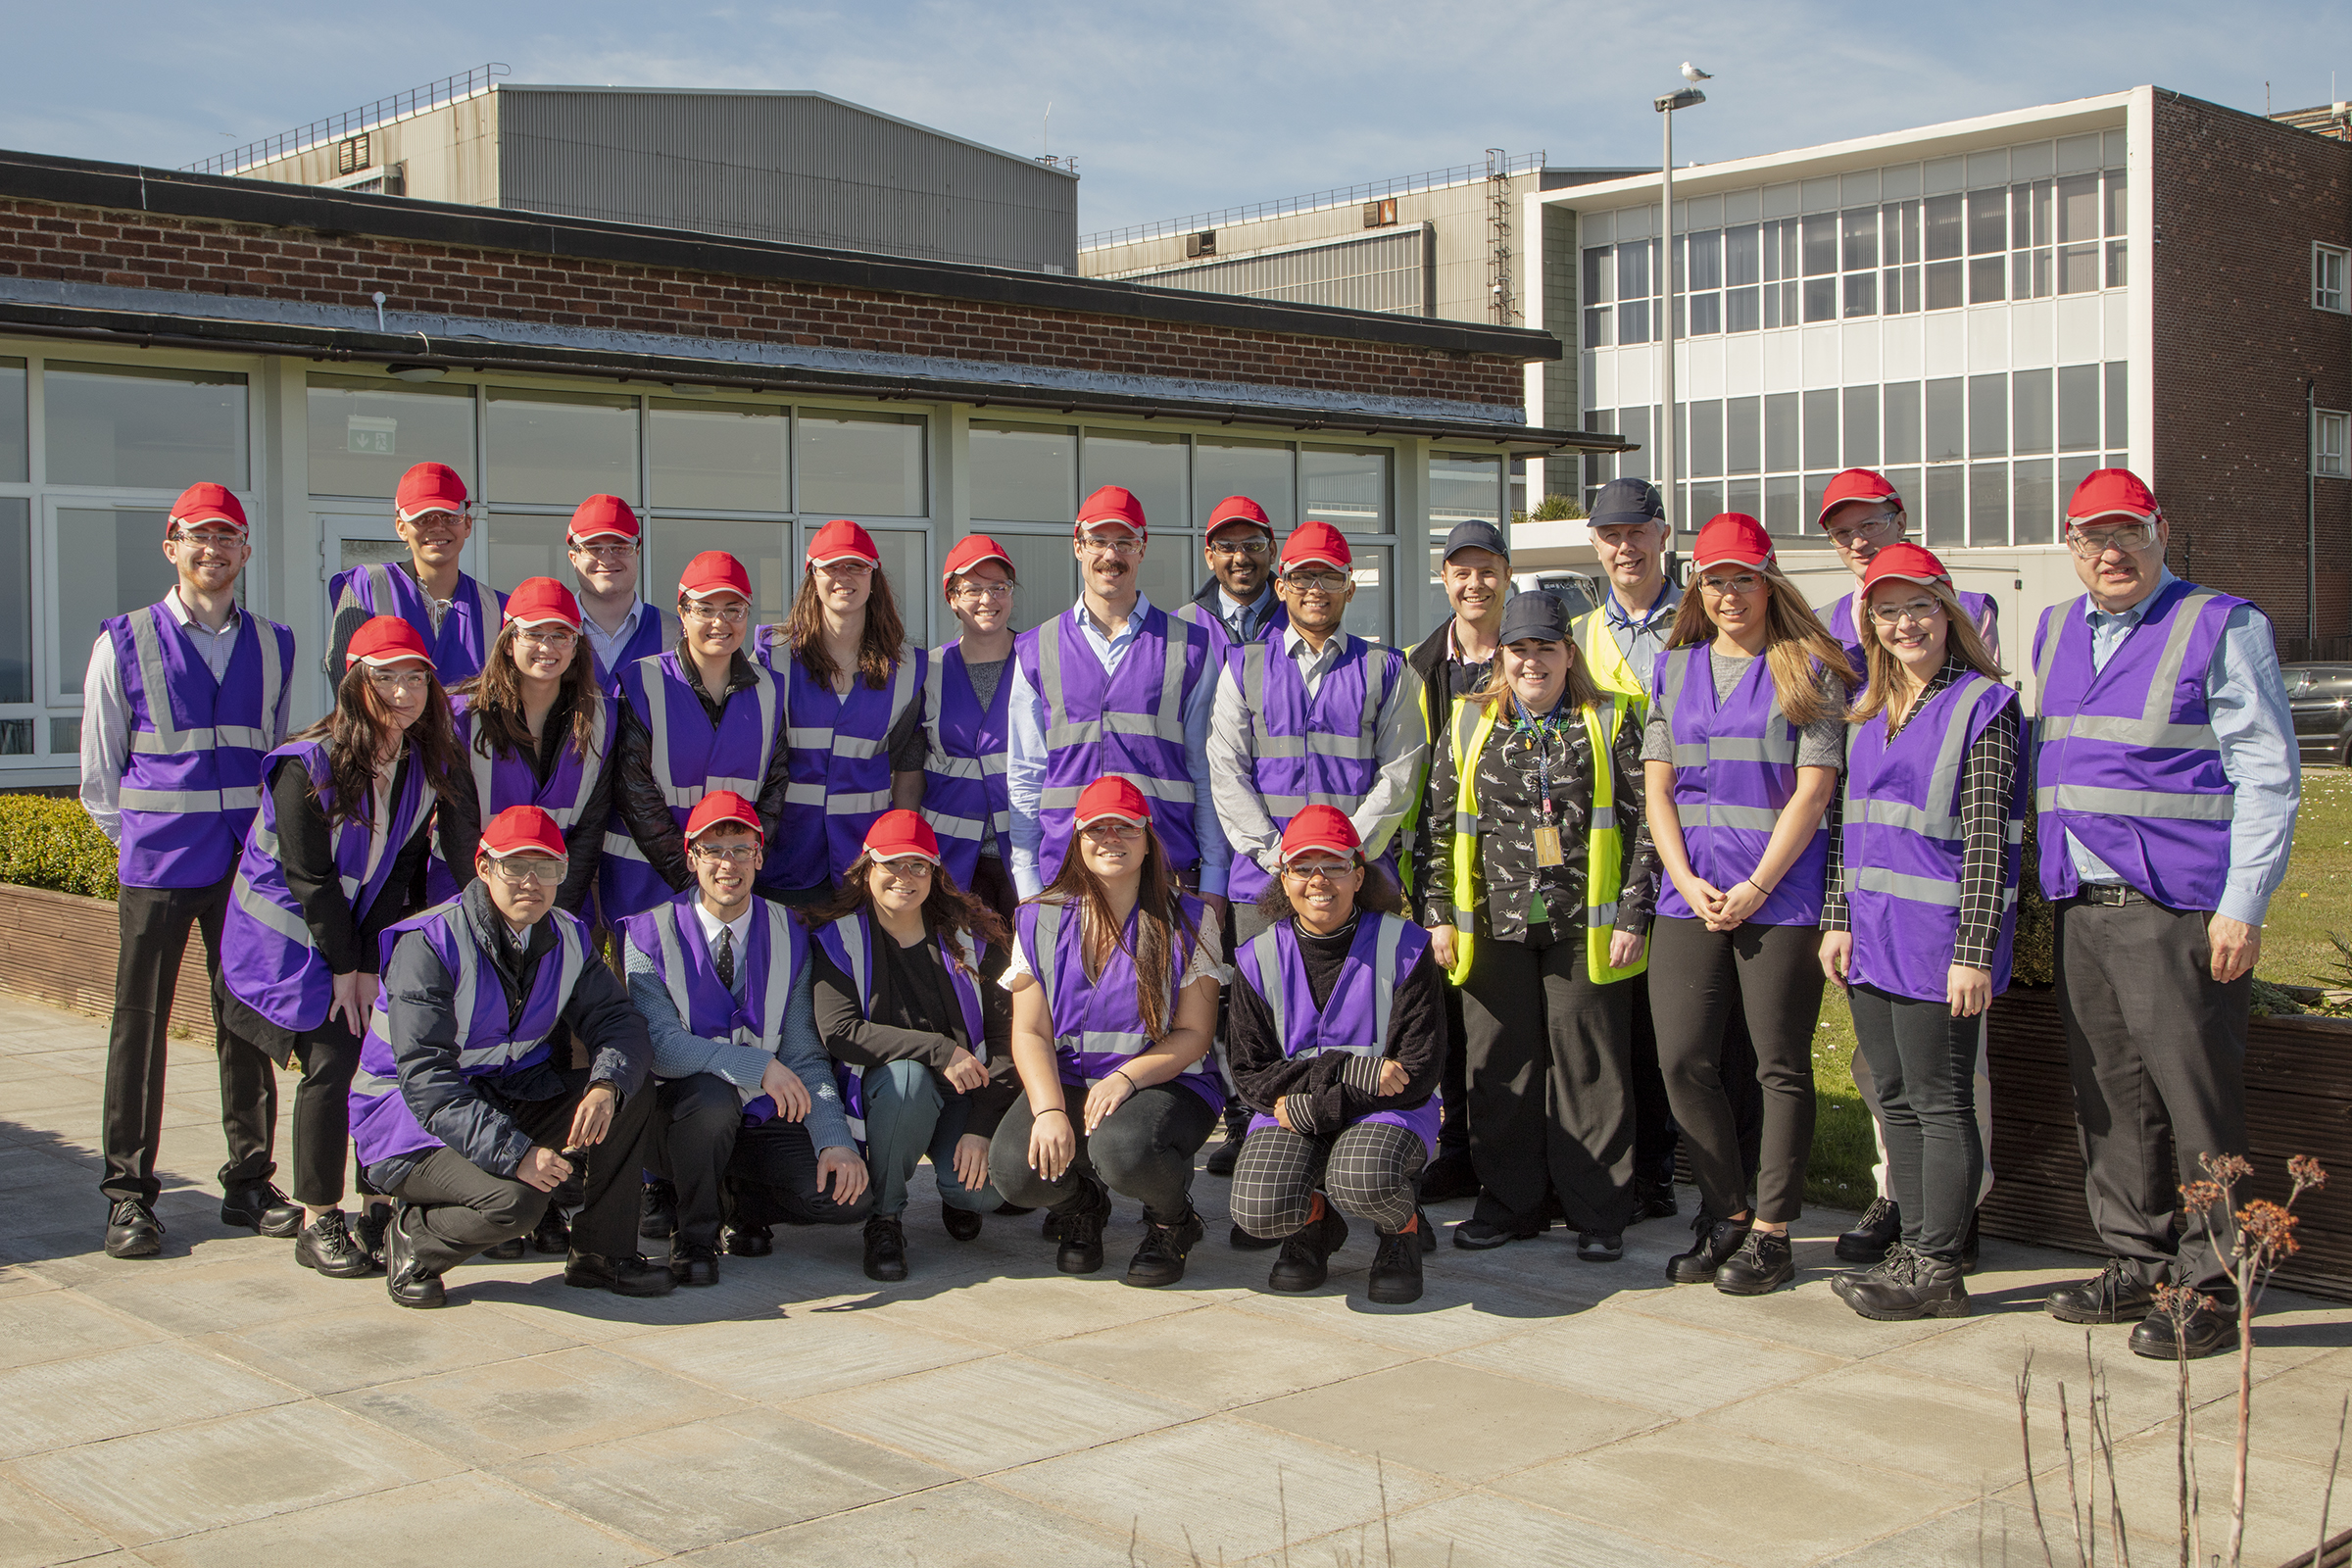 DePaul students studied Brexit up close during a spring break seminar in Northern Ireland, where they visited a Caterpillar plant and other businesses.